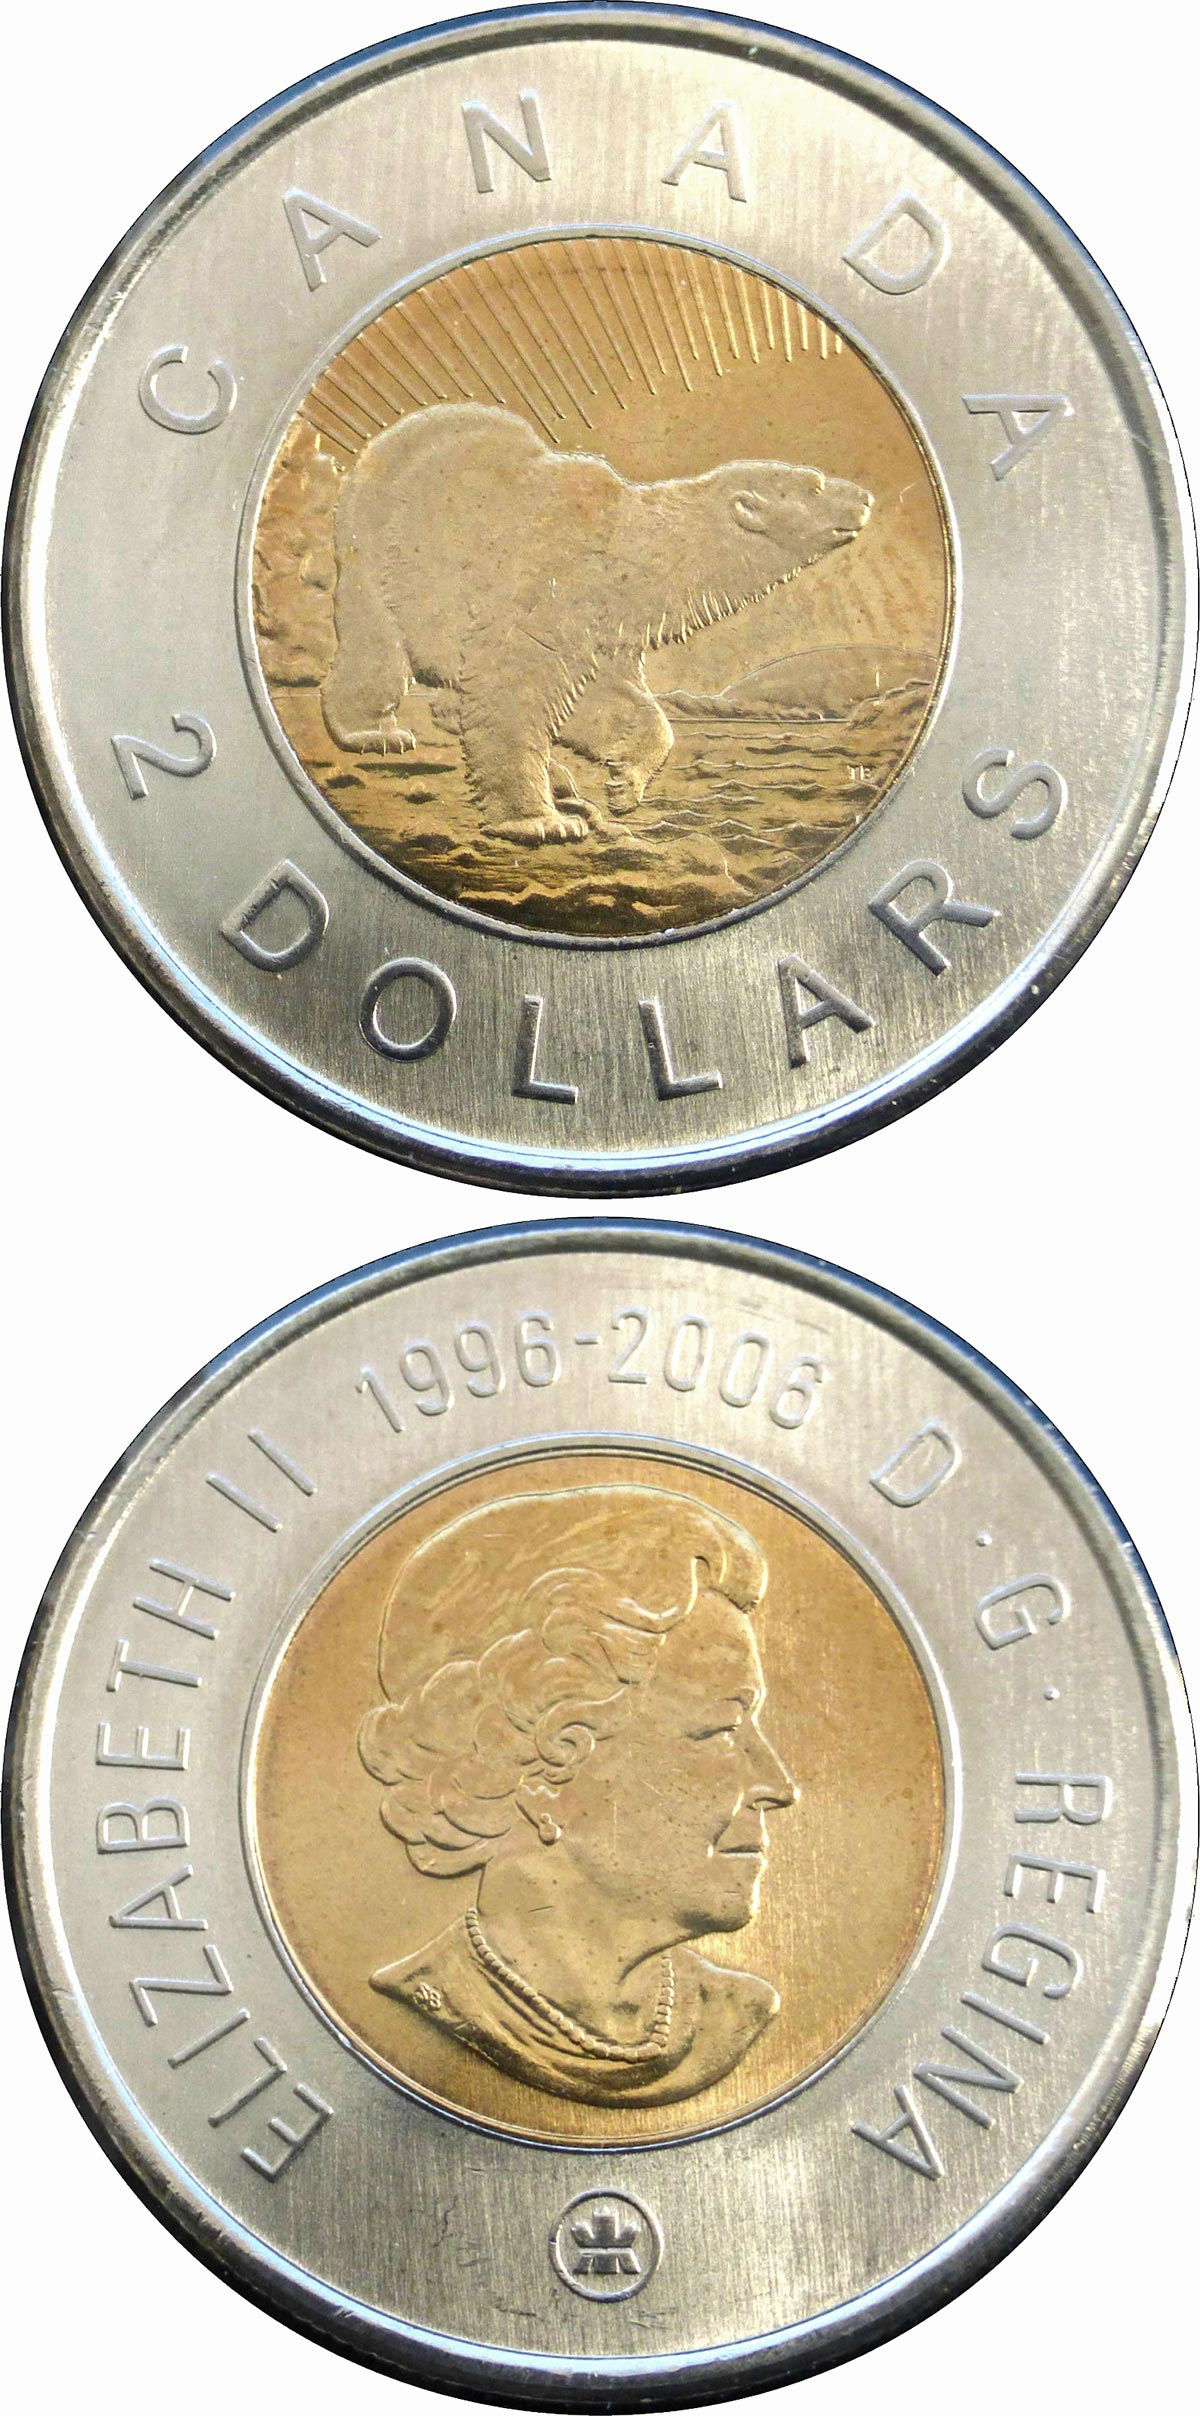 Image of 2 dollars coin - 10th Anniversary of Toonie | Canada 2006.  The Bimetal: CuNi, nordic gold coin is of UNC quality.